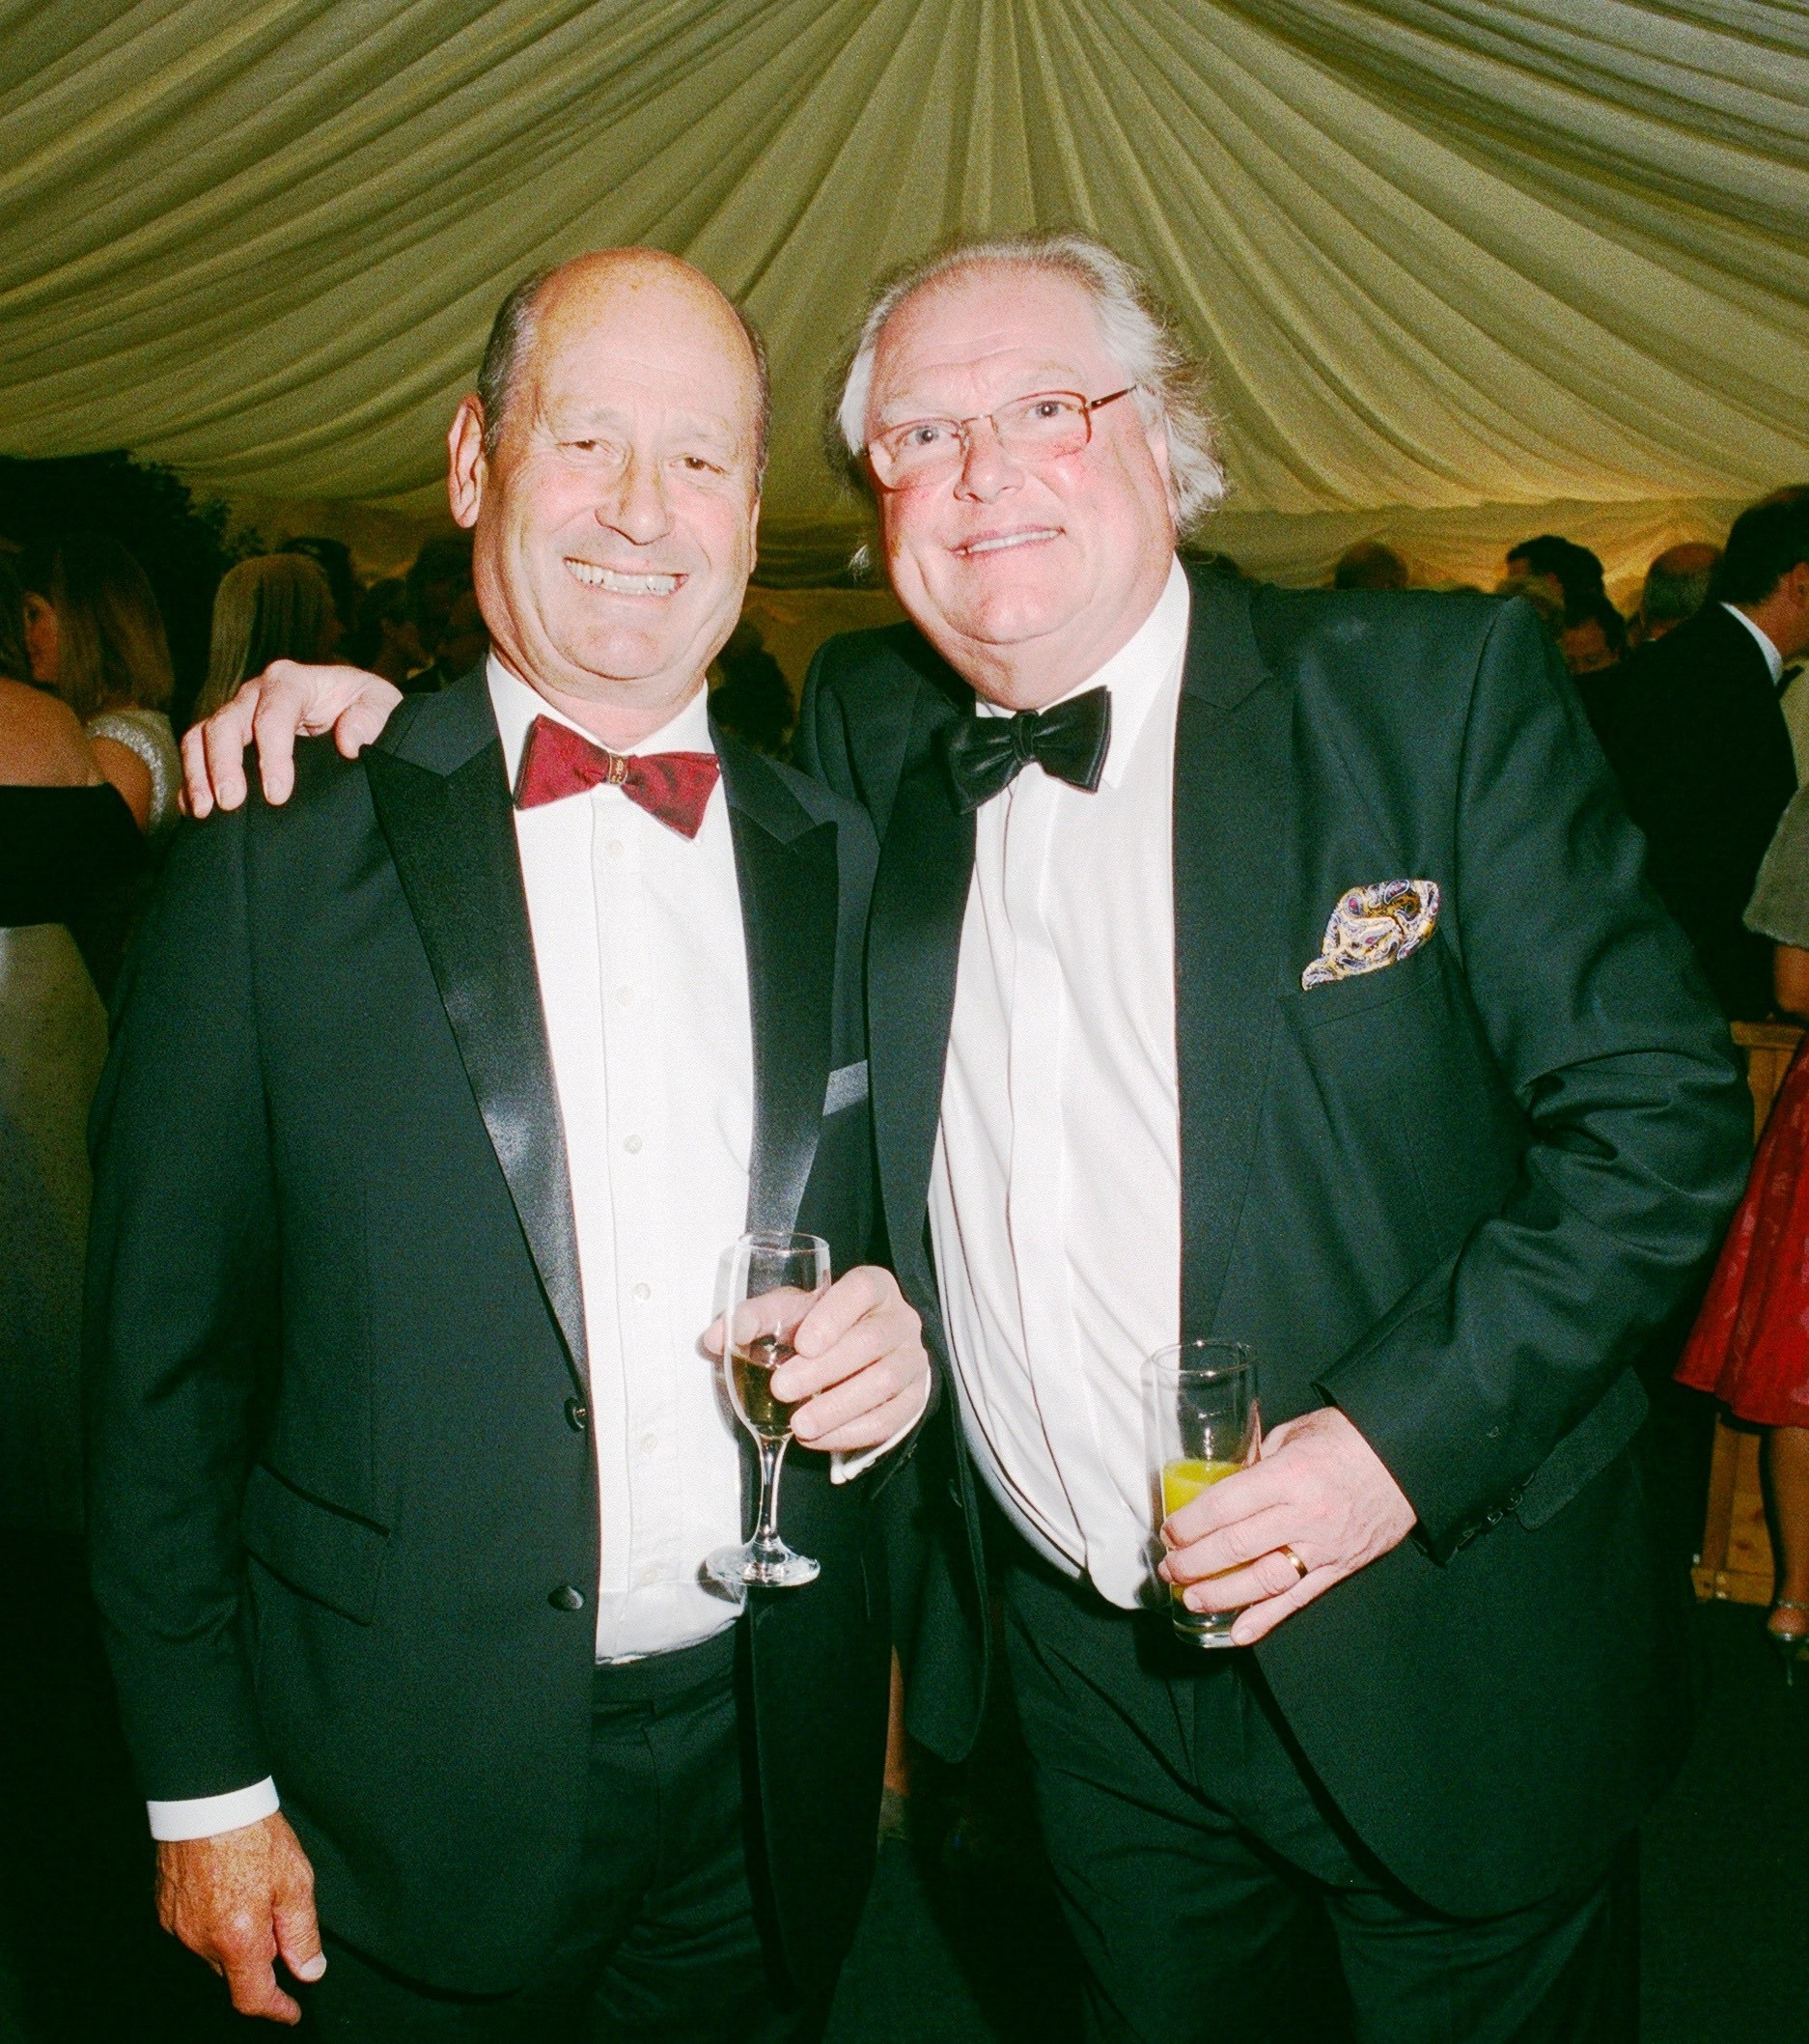 Jon Bellfield, left, with Lord Digby Jones at the Pedmore Sporting Club summer ball